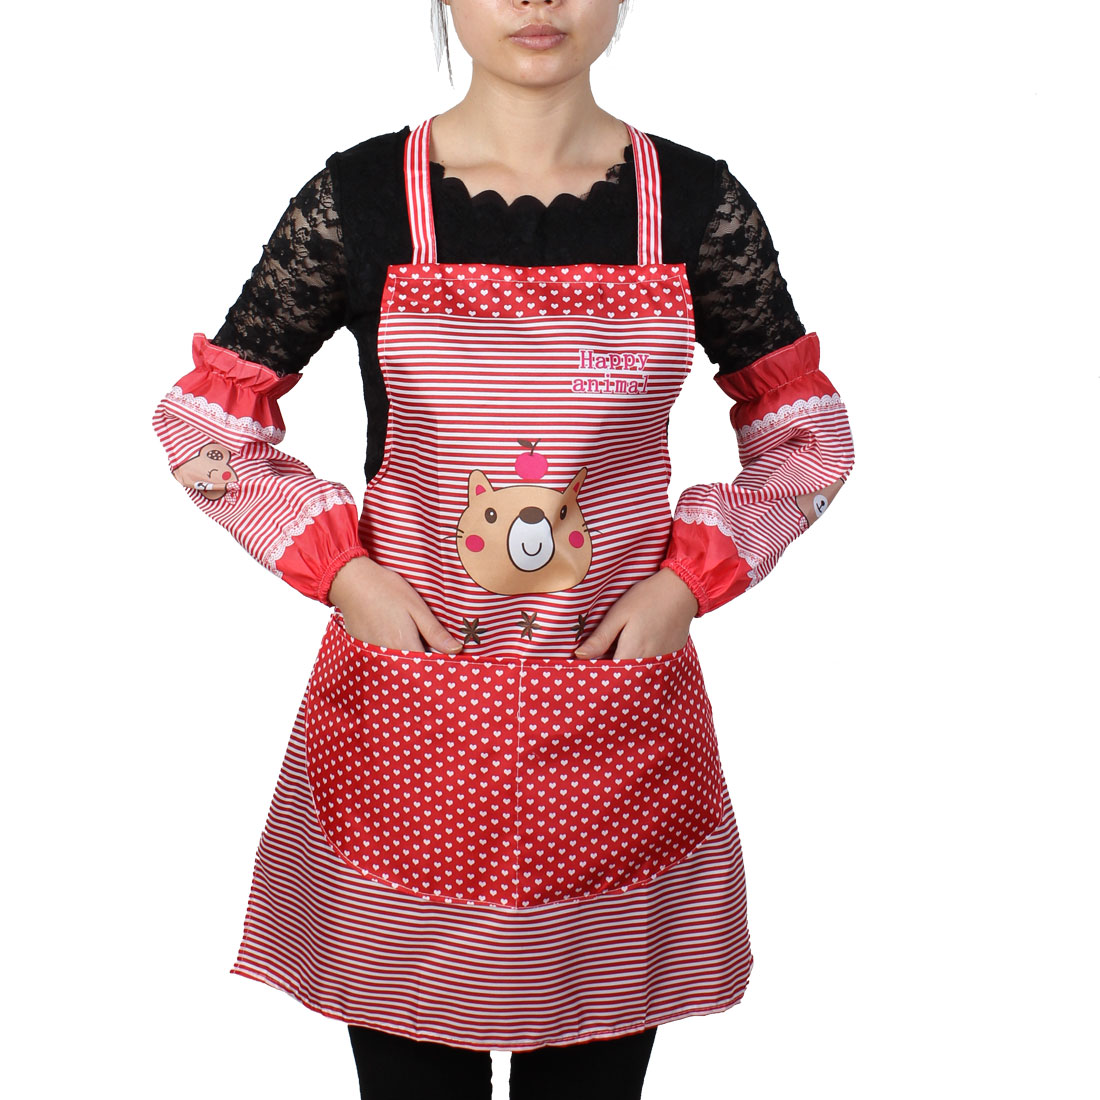 Women Kitchen Restaurant Cooking Aprons Pocket Gift Apron Red w Sleeves